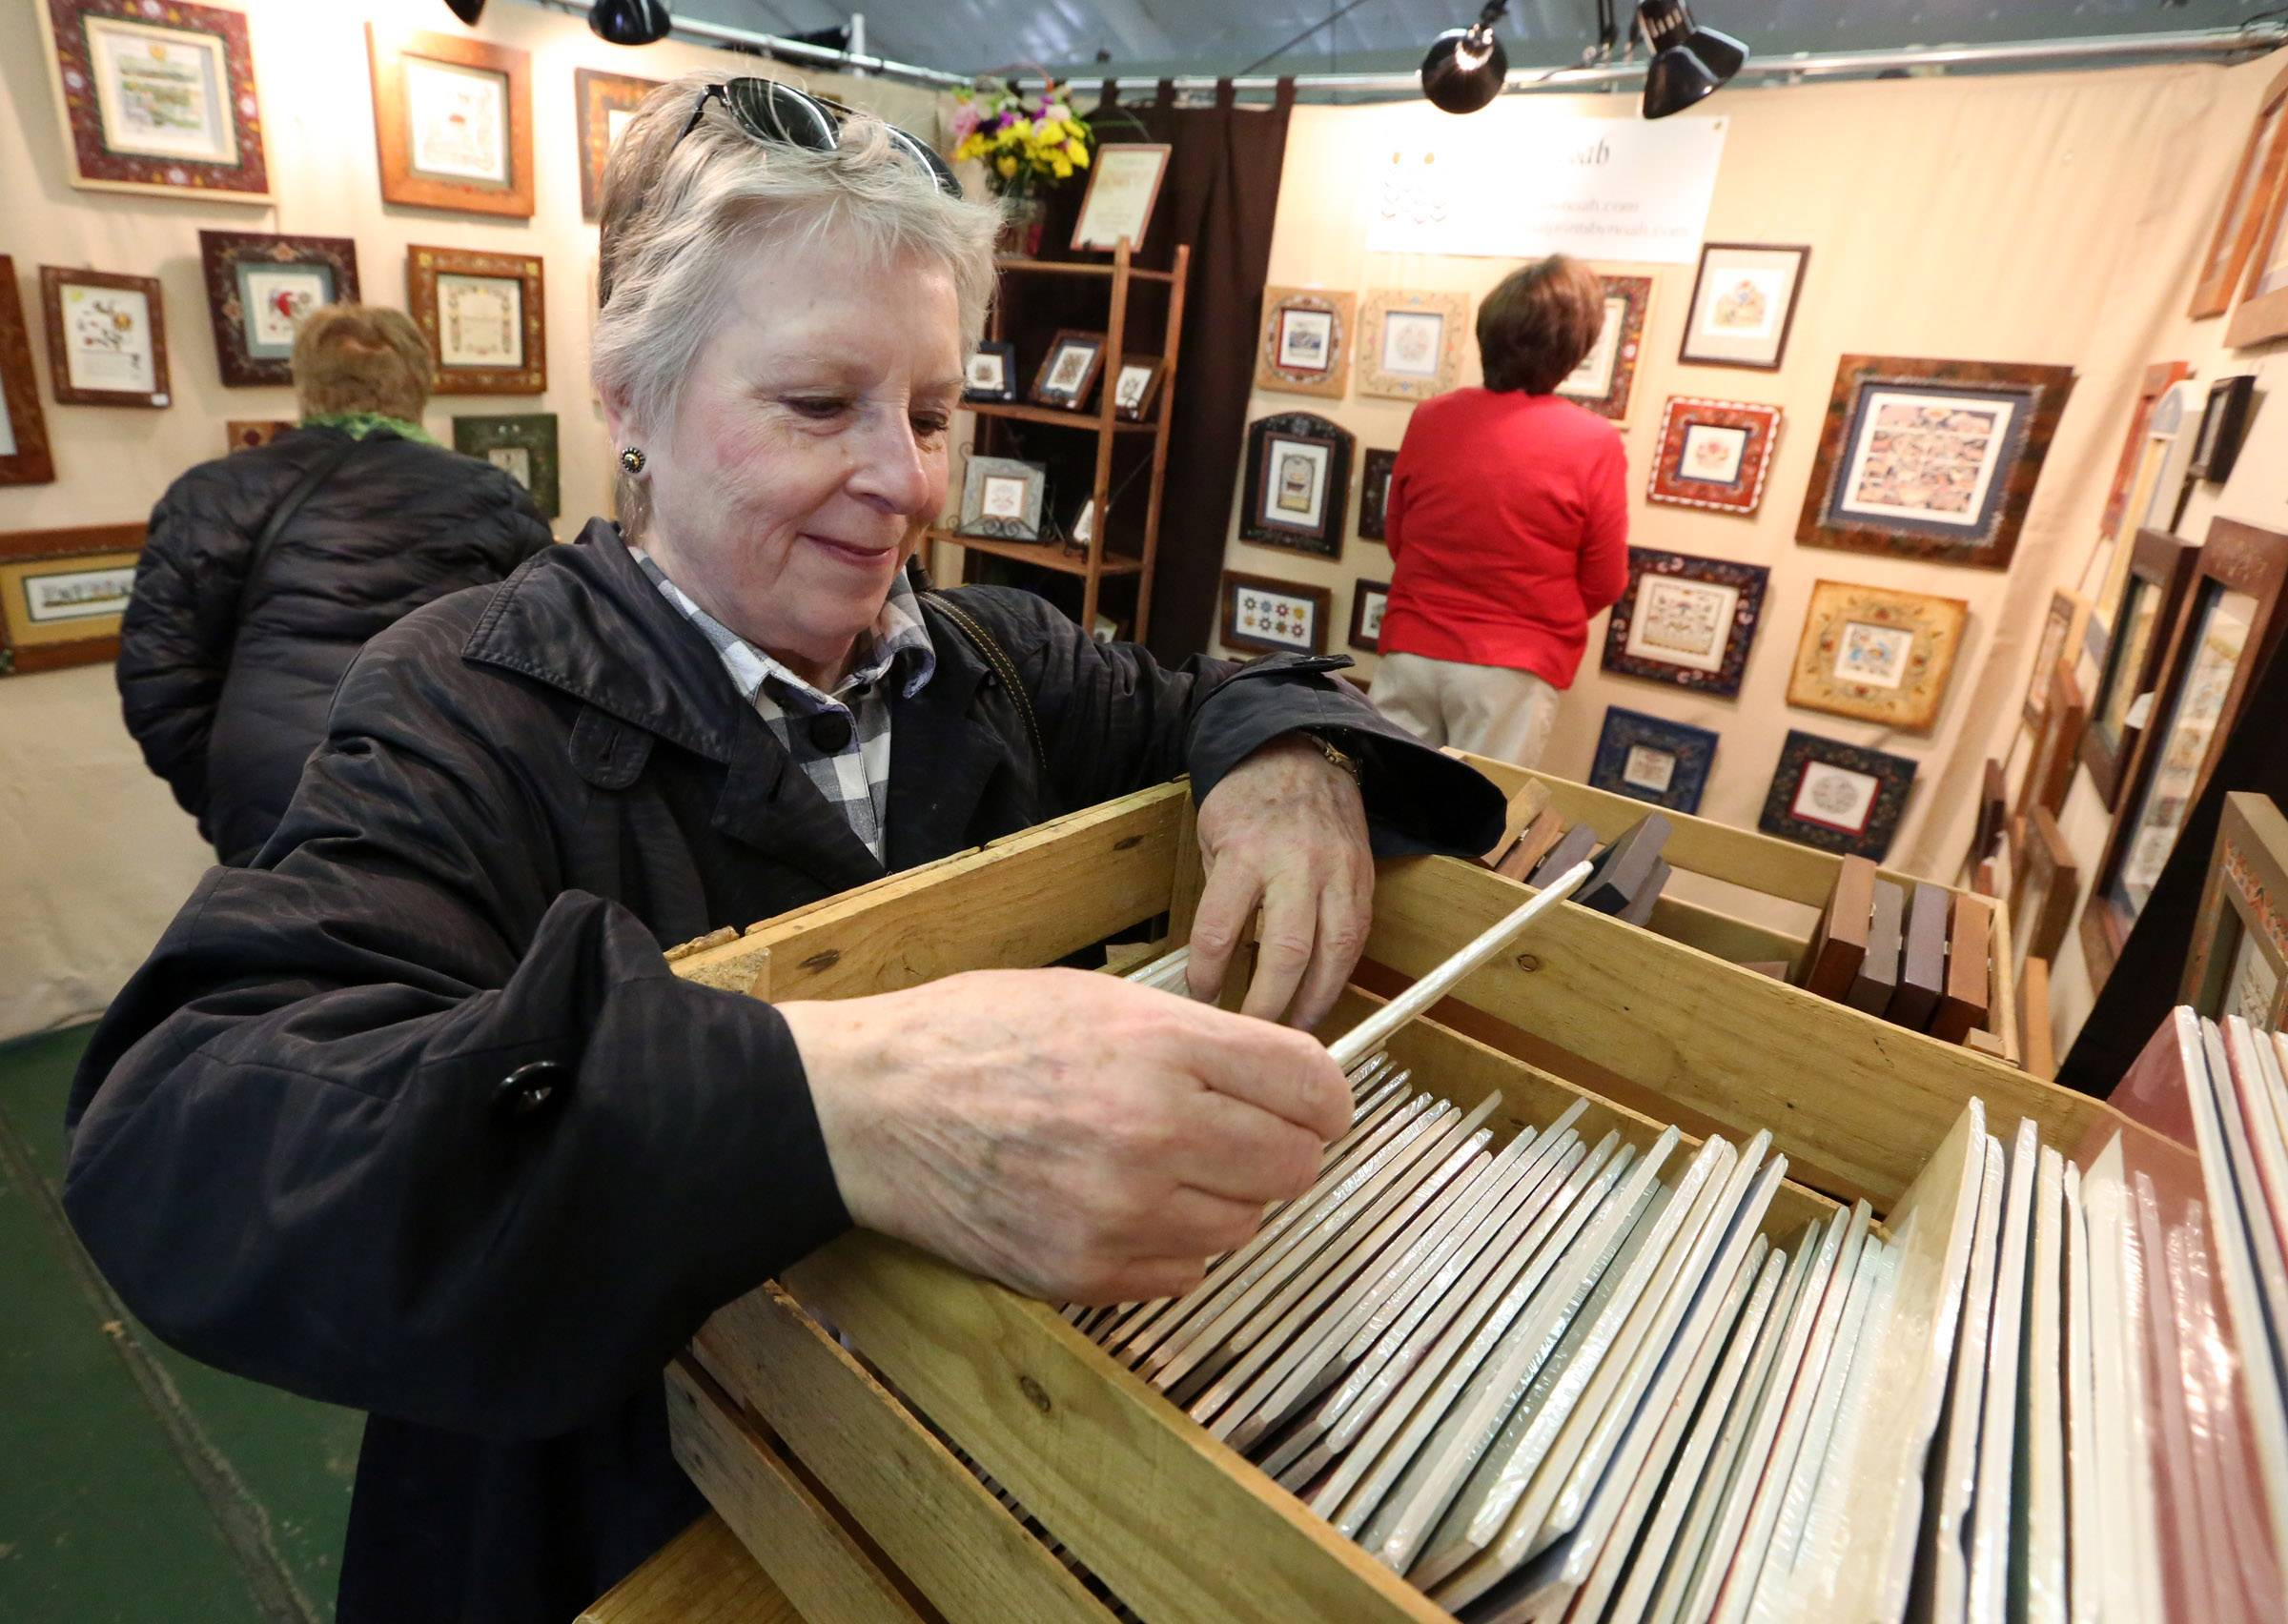 Deborah Boesch of Arlington Heights looks at art by Christine Noah-Cooper of Dayton, Ohio, during a Spring Country Folk Art Festival at Kane County Fairgrounds on Saturday in St. Charles.